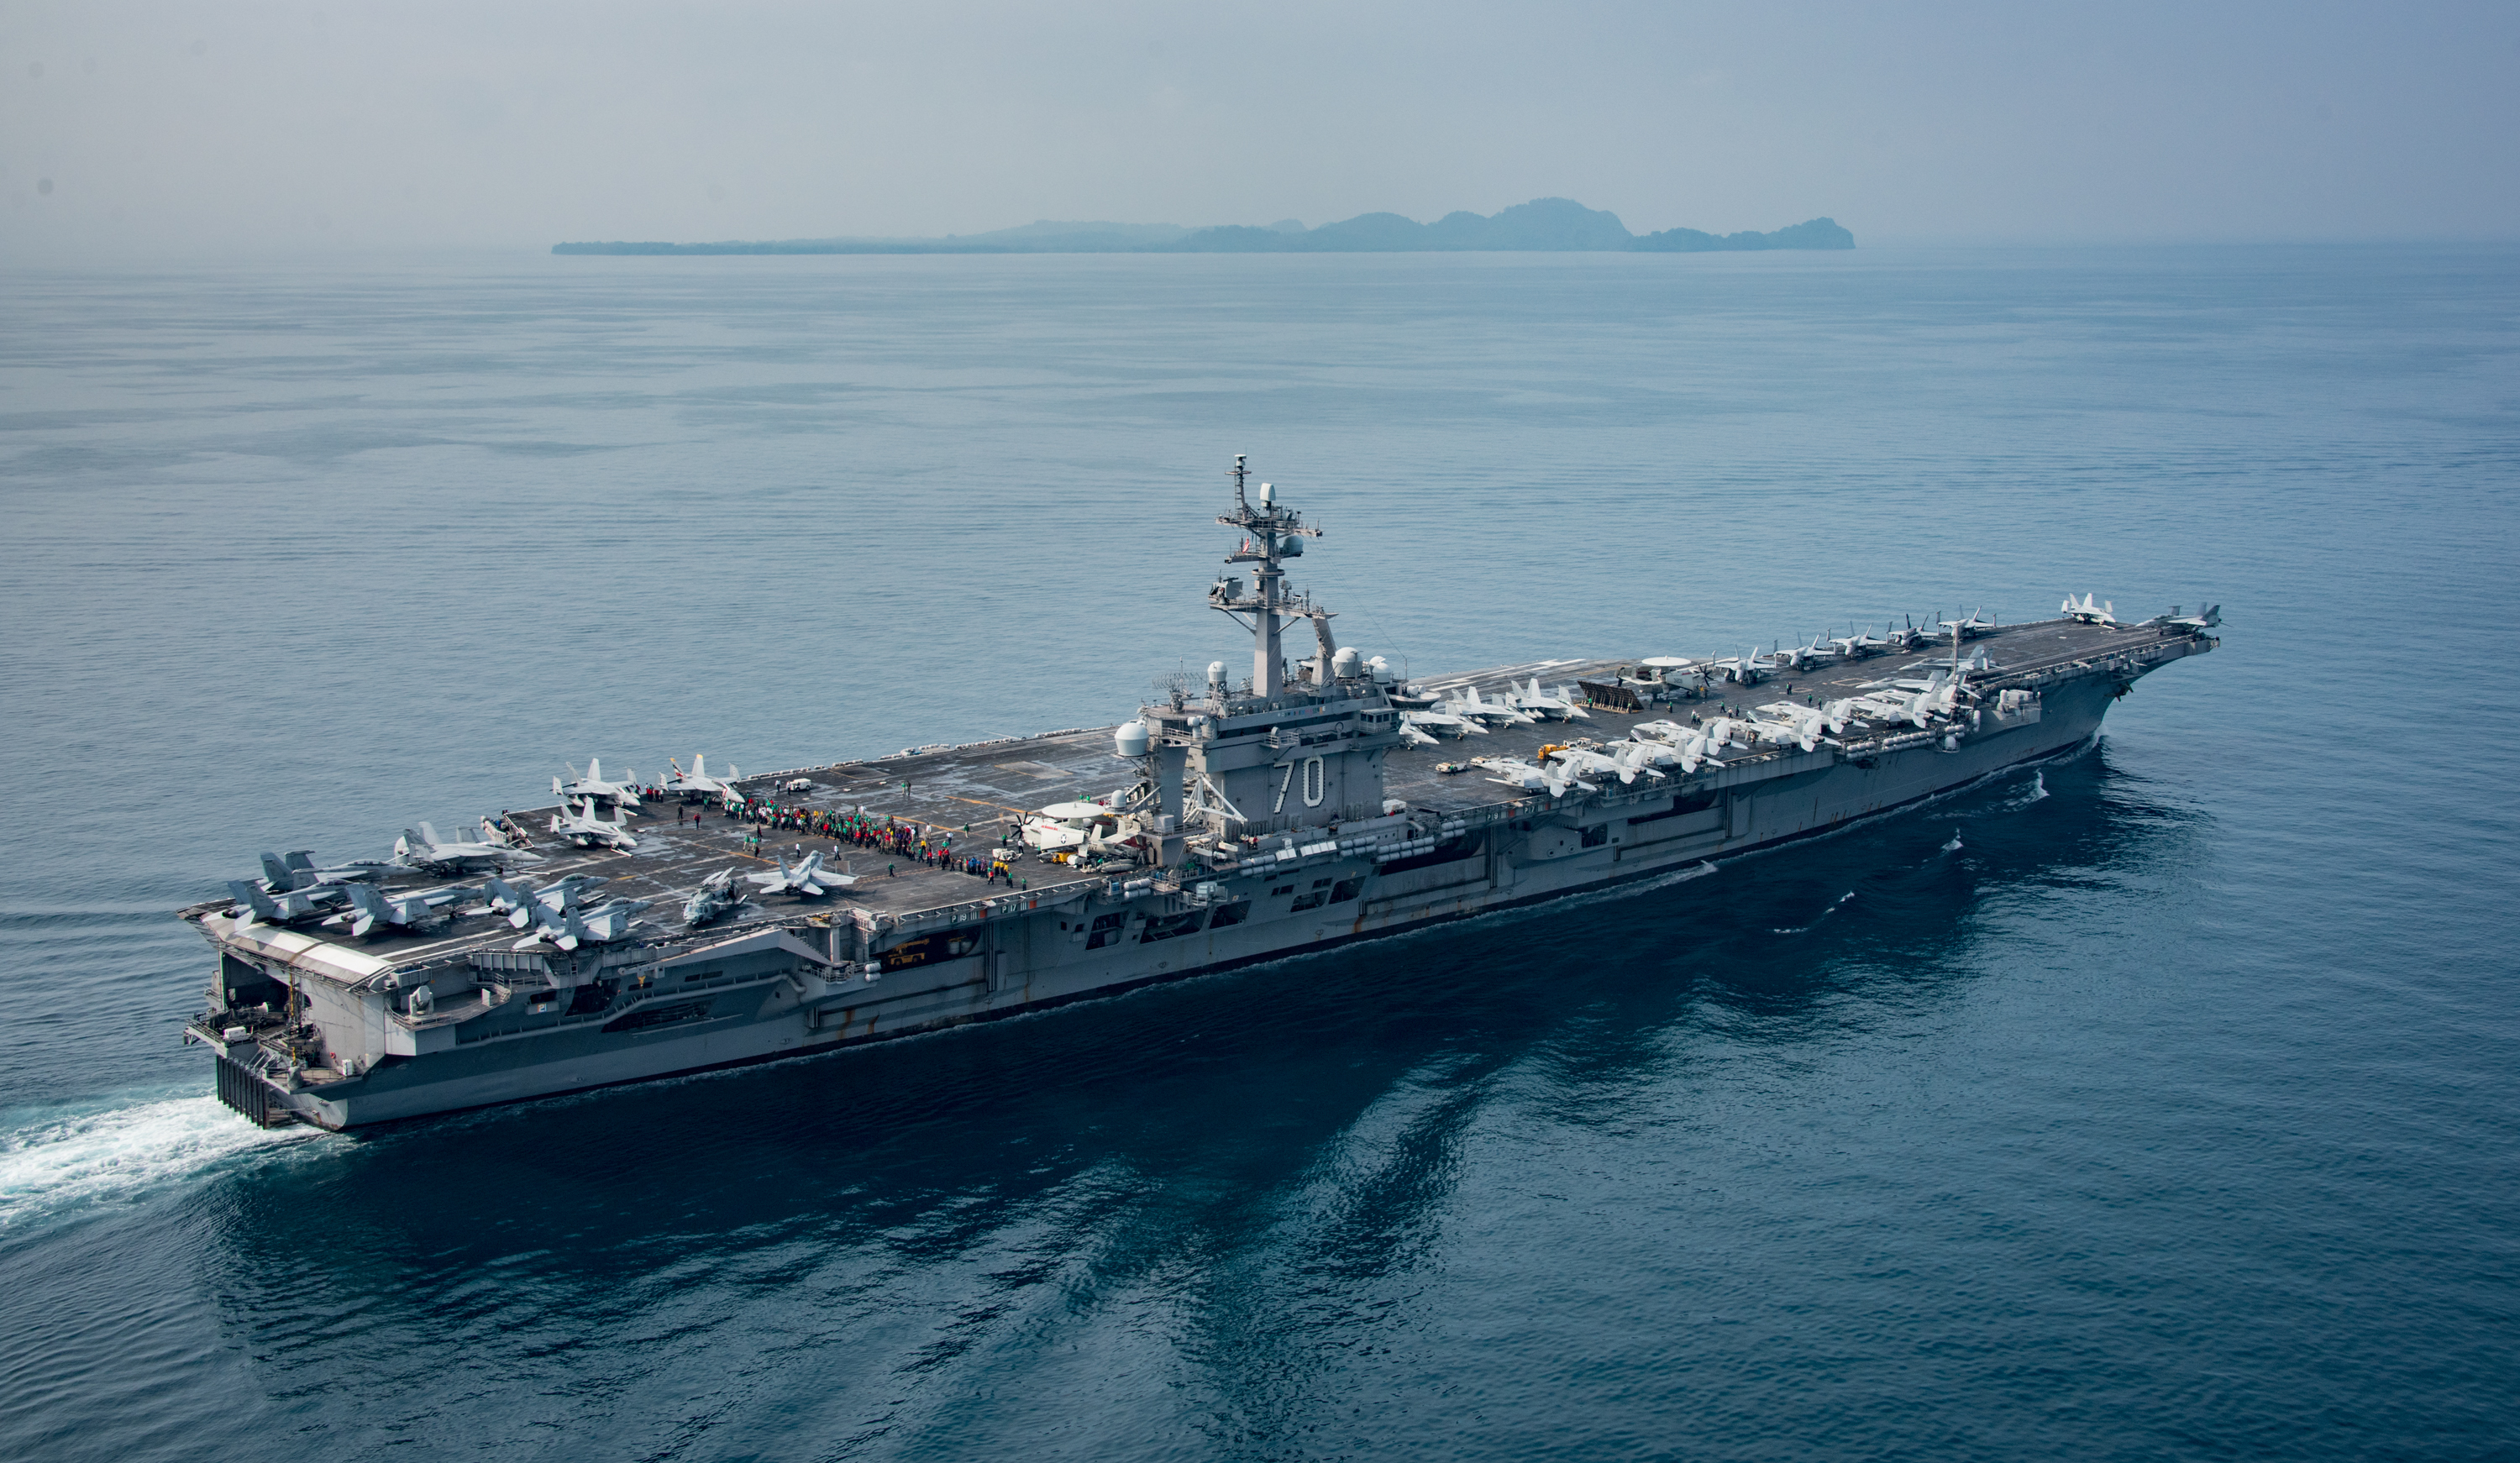 In this handout provided by the U.S. Navy, the aircraft carrier USS Carl Vinson transits the Sunda Strait on April 14, 2017 in Indonesia.